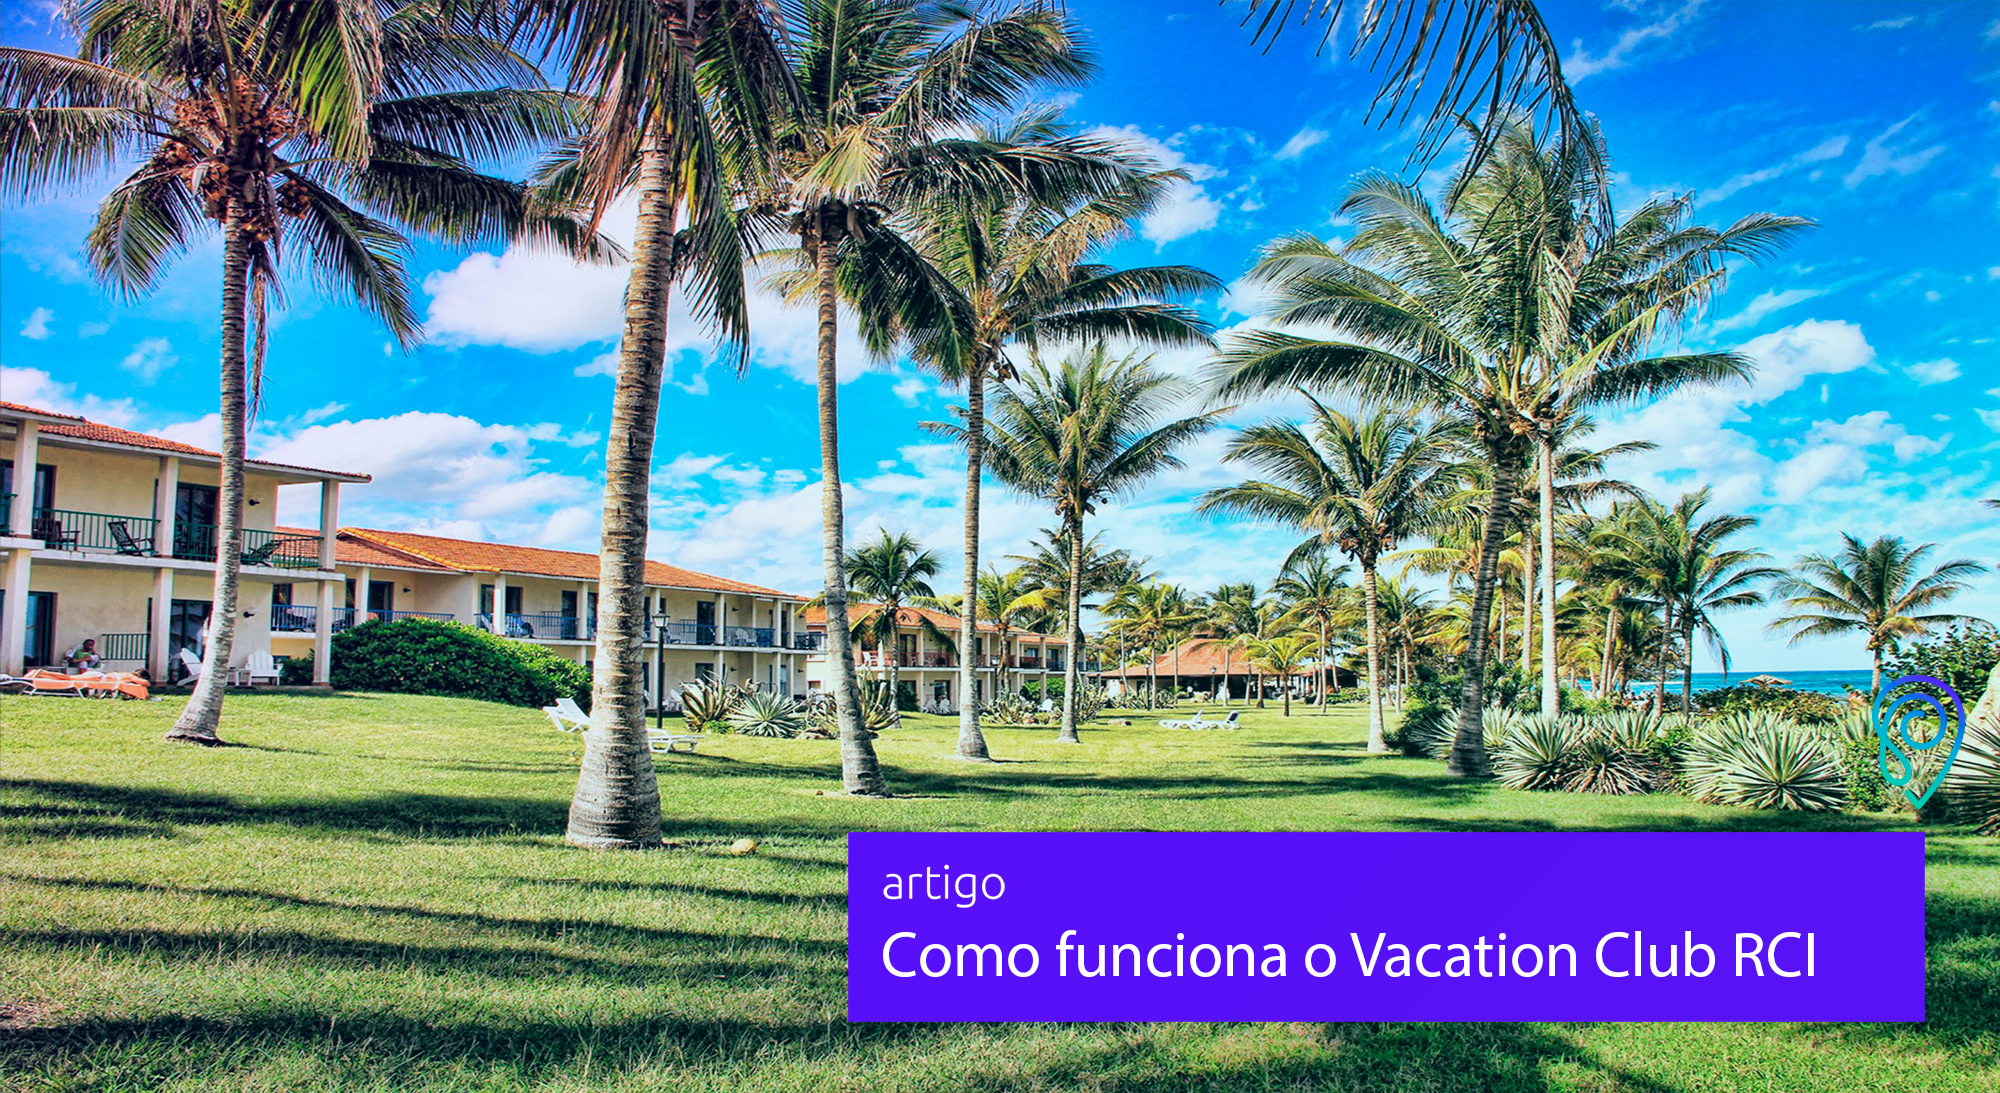 Entenda como funciona o Vacation Club RCI